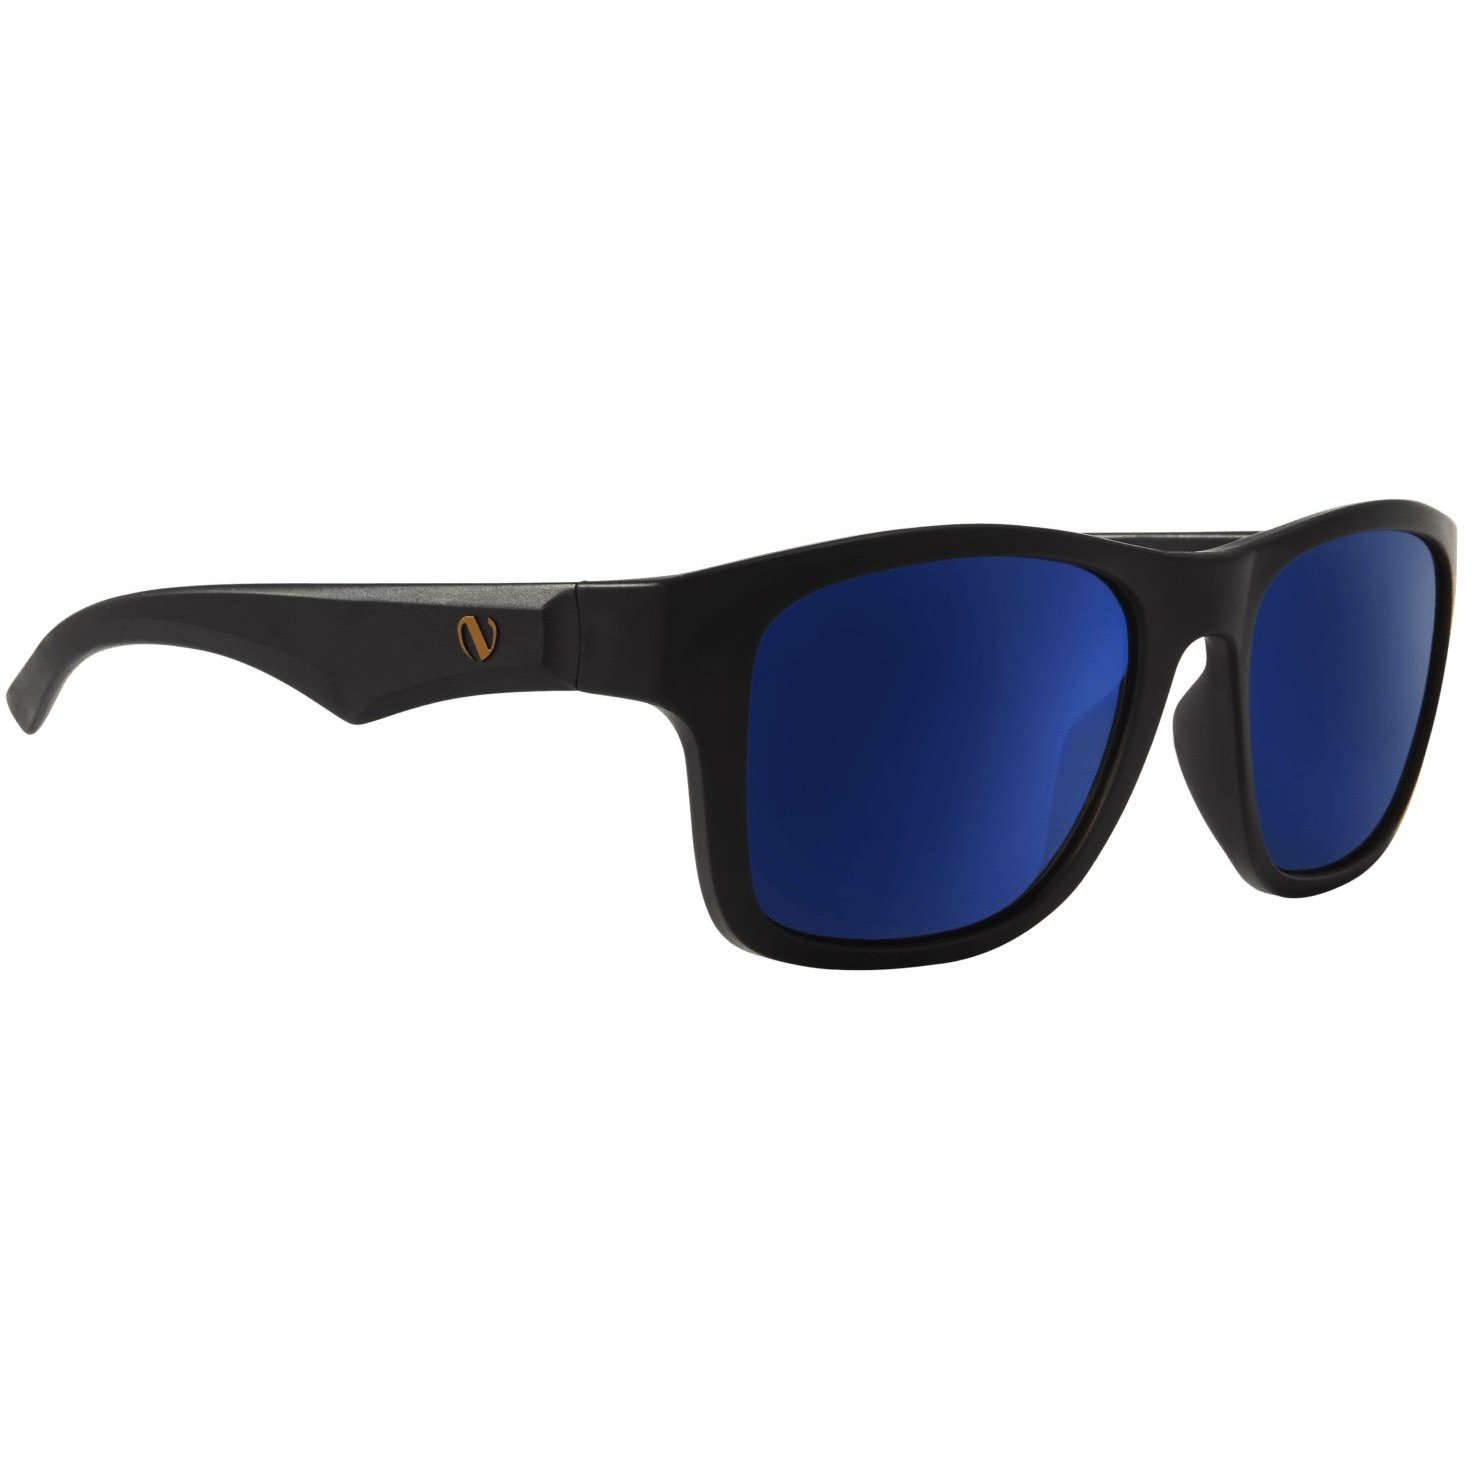 Northug Daycruiser Polarized Black/Blue